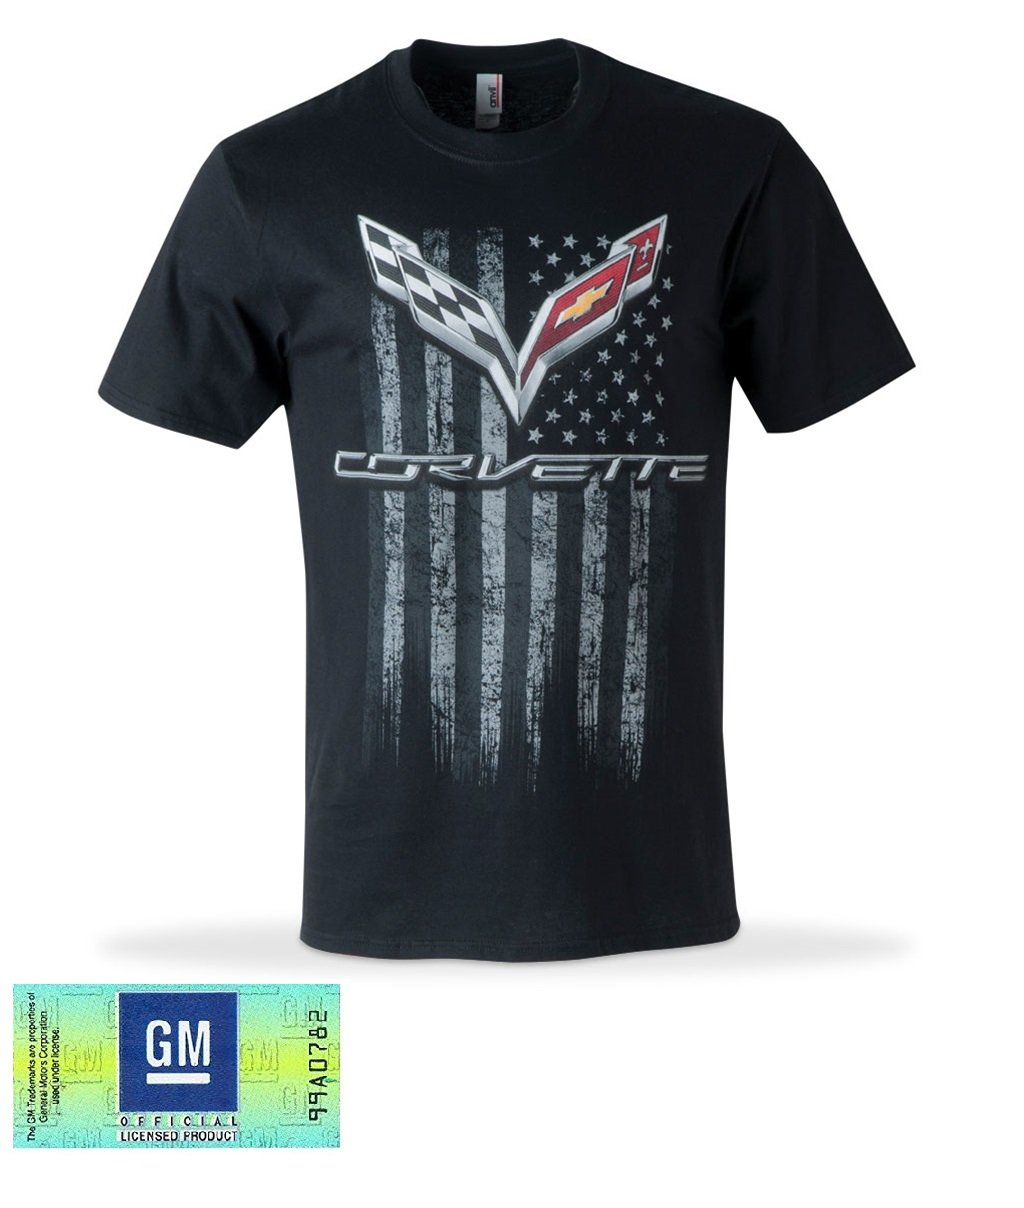 X-Large, White C7 Corvette American Legacy Mens T-Shirt